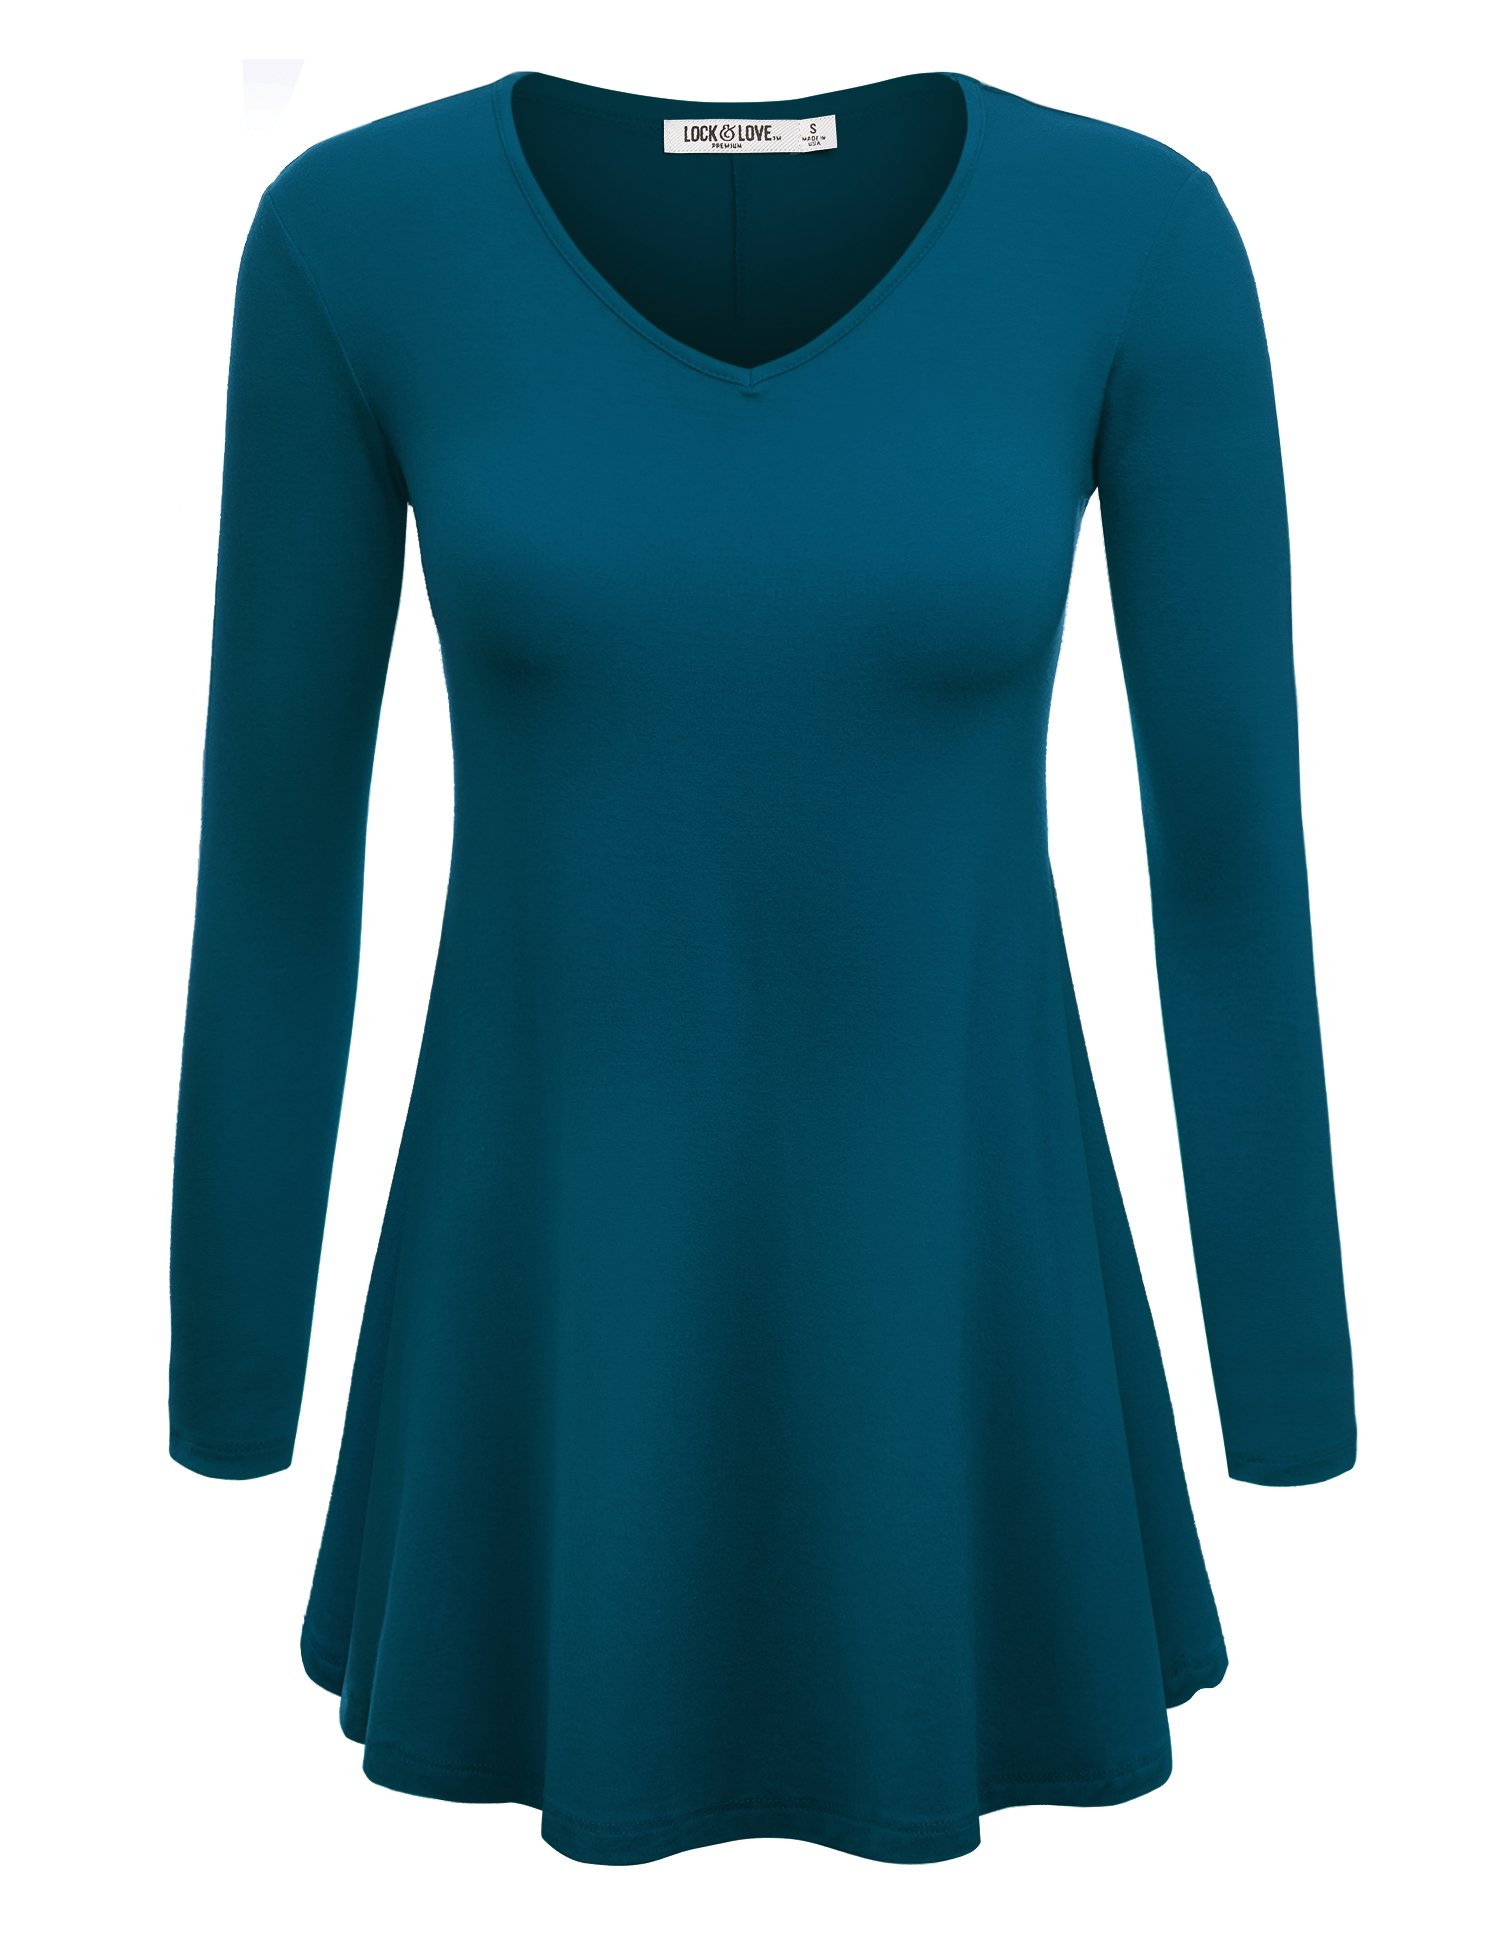 WT768 Womens Long Sleeve V Neck Trapeze Tunic M TEAL